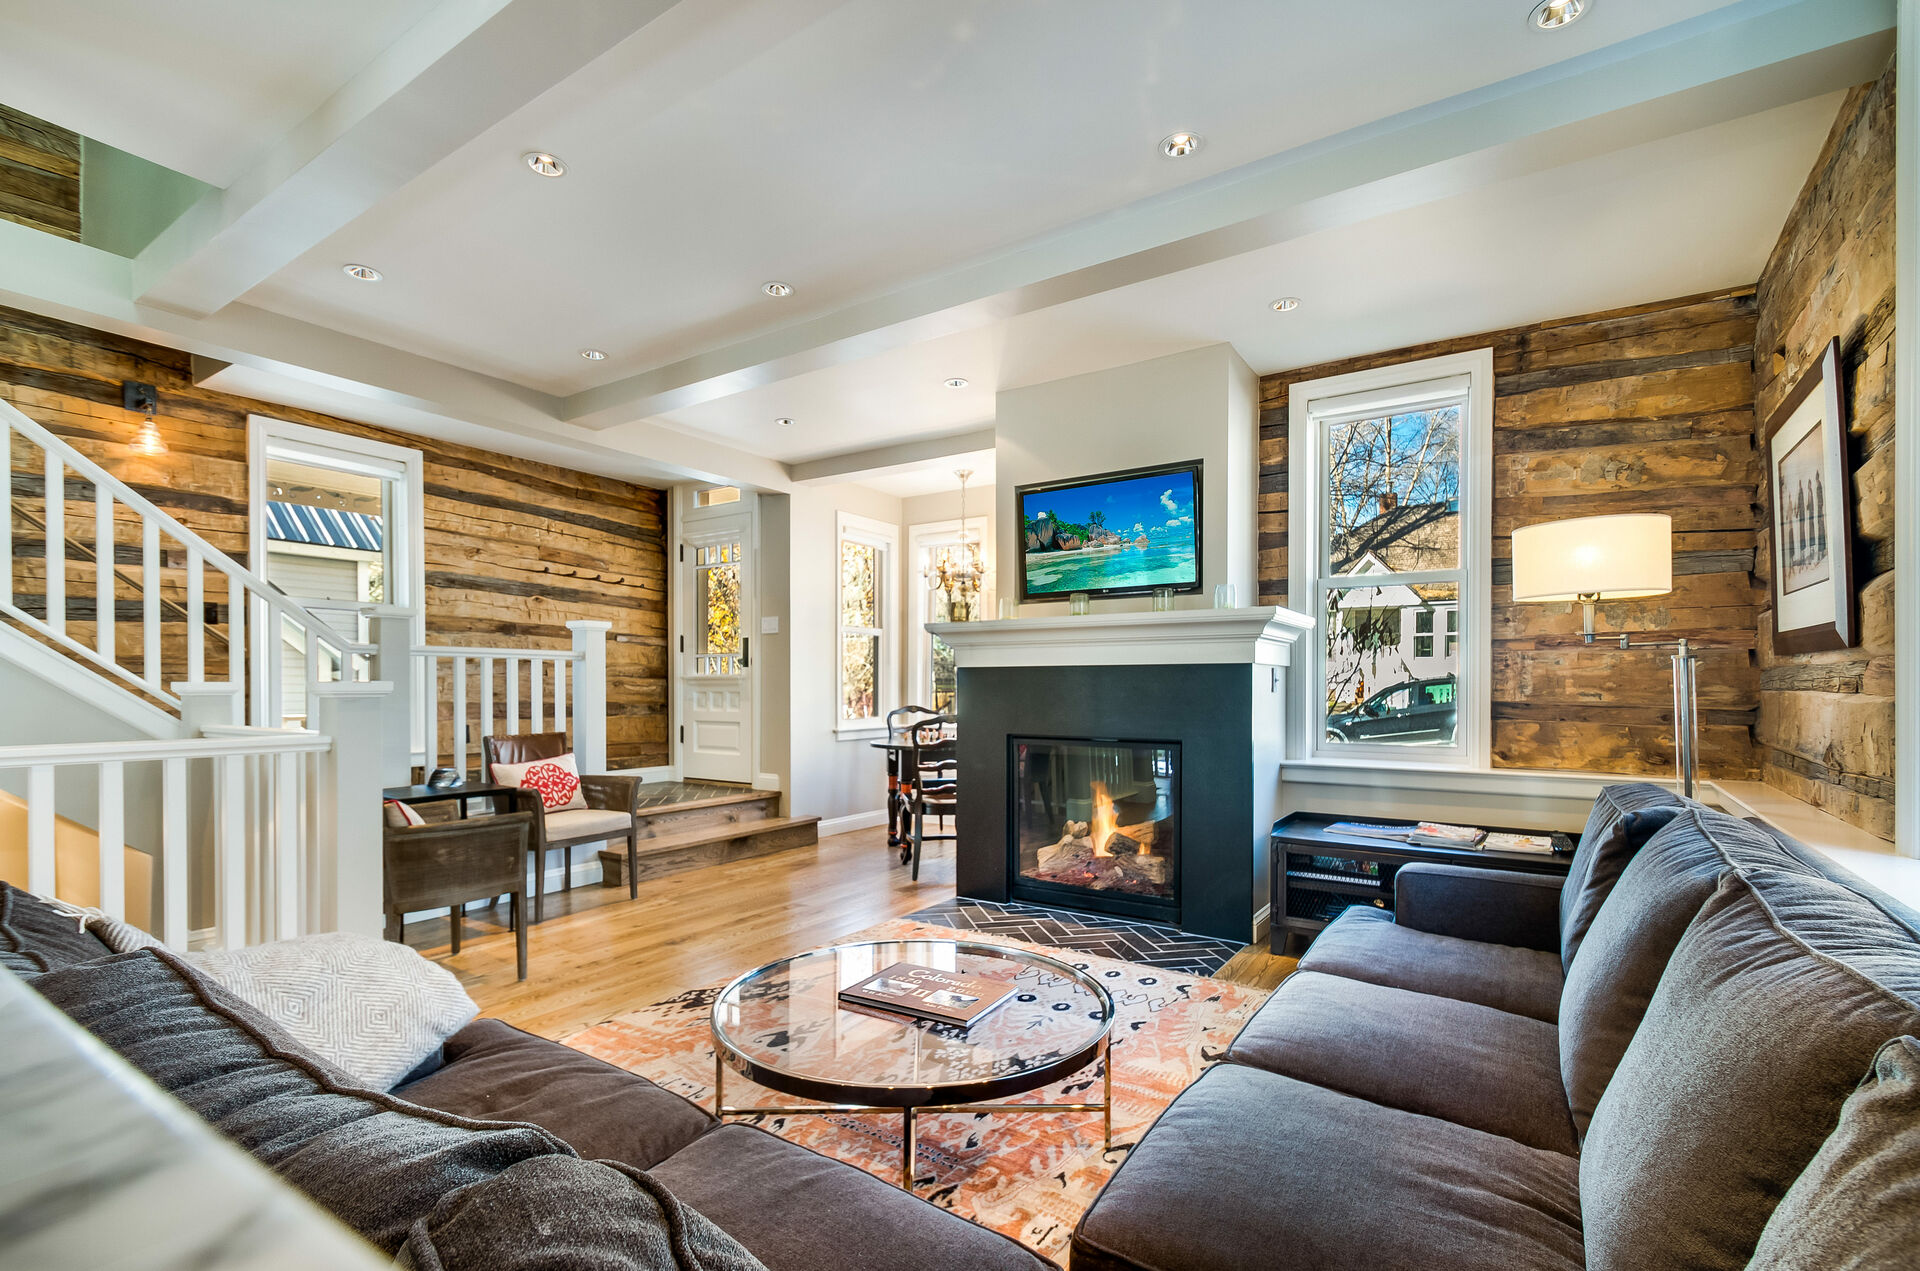 Living Room with Fireplace and Flat-Screen TV Surrounded by Wood Panel Walls